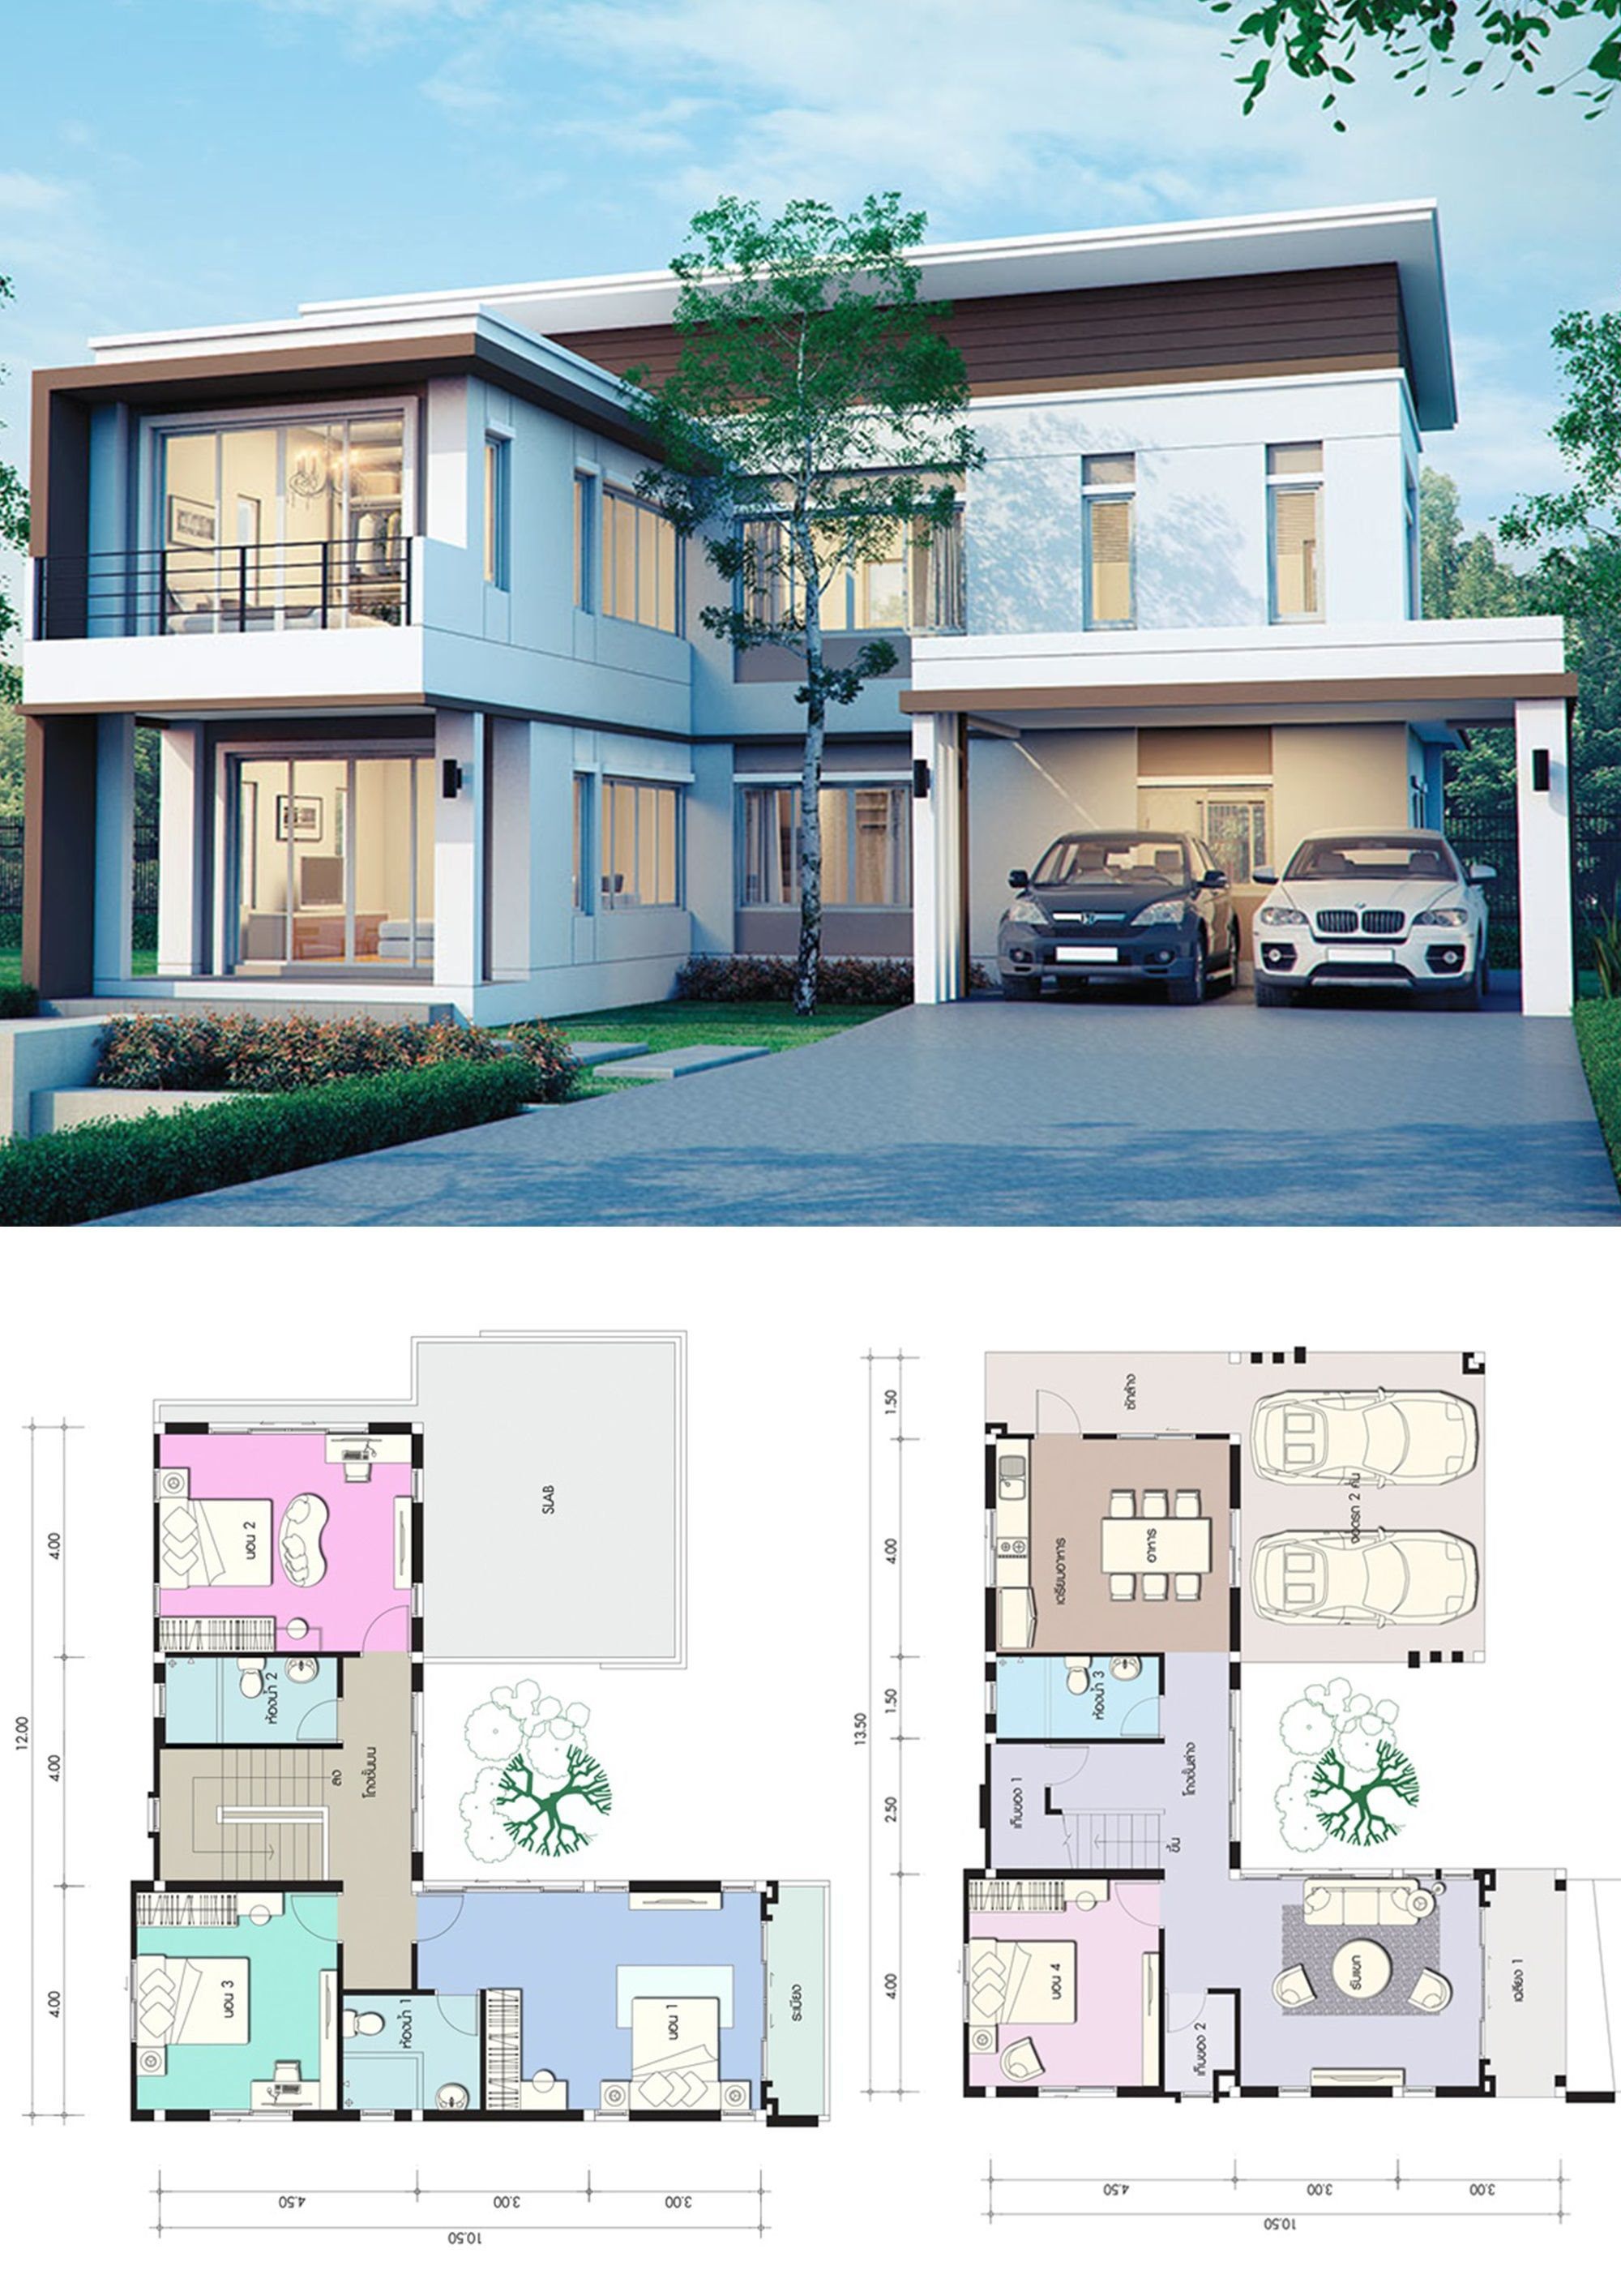 House Design Plan 13 5x10 5m With 4 Bedrooms In 2021 Craftsman House Designs Home Design Plans Smart Home Design